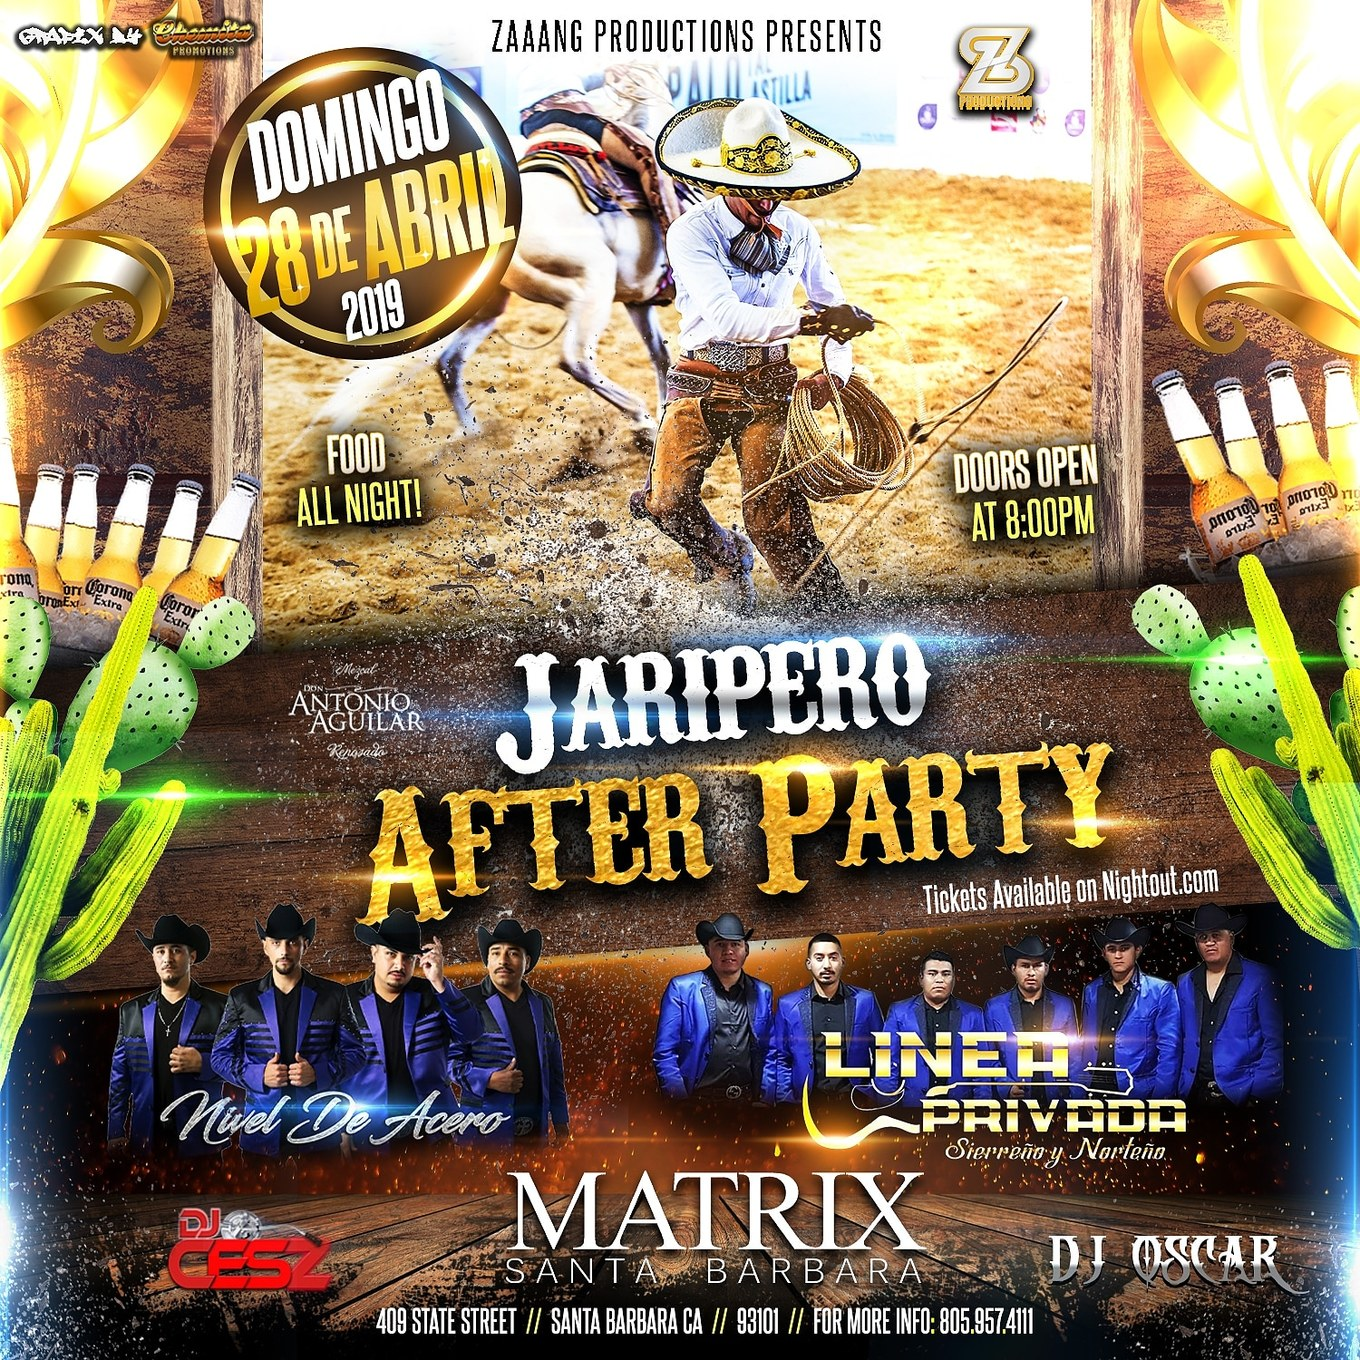 JARIPEO AFTER PARTY AT THE MATRIX APRIL 28 - Tickets